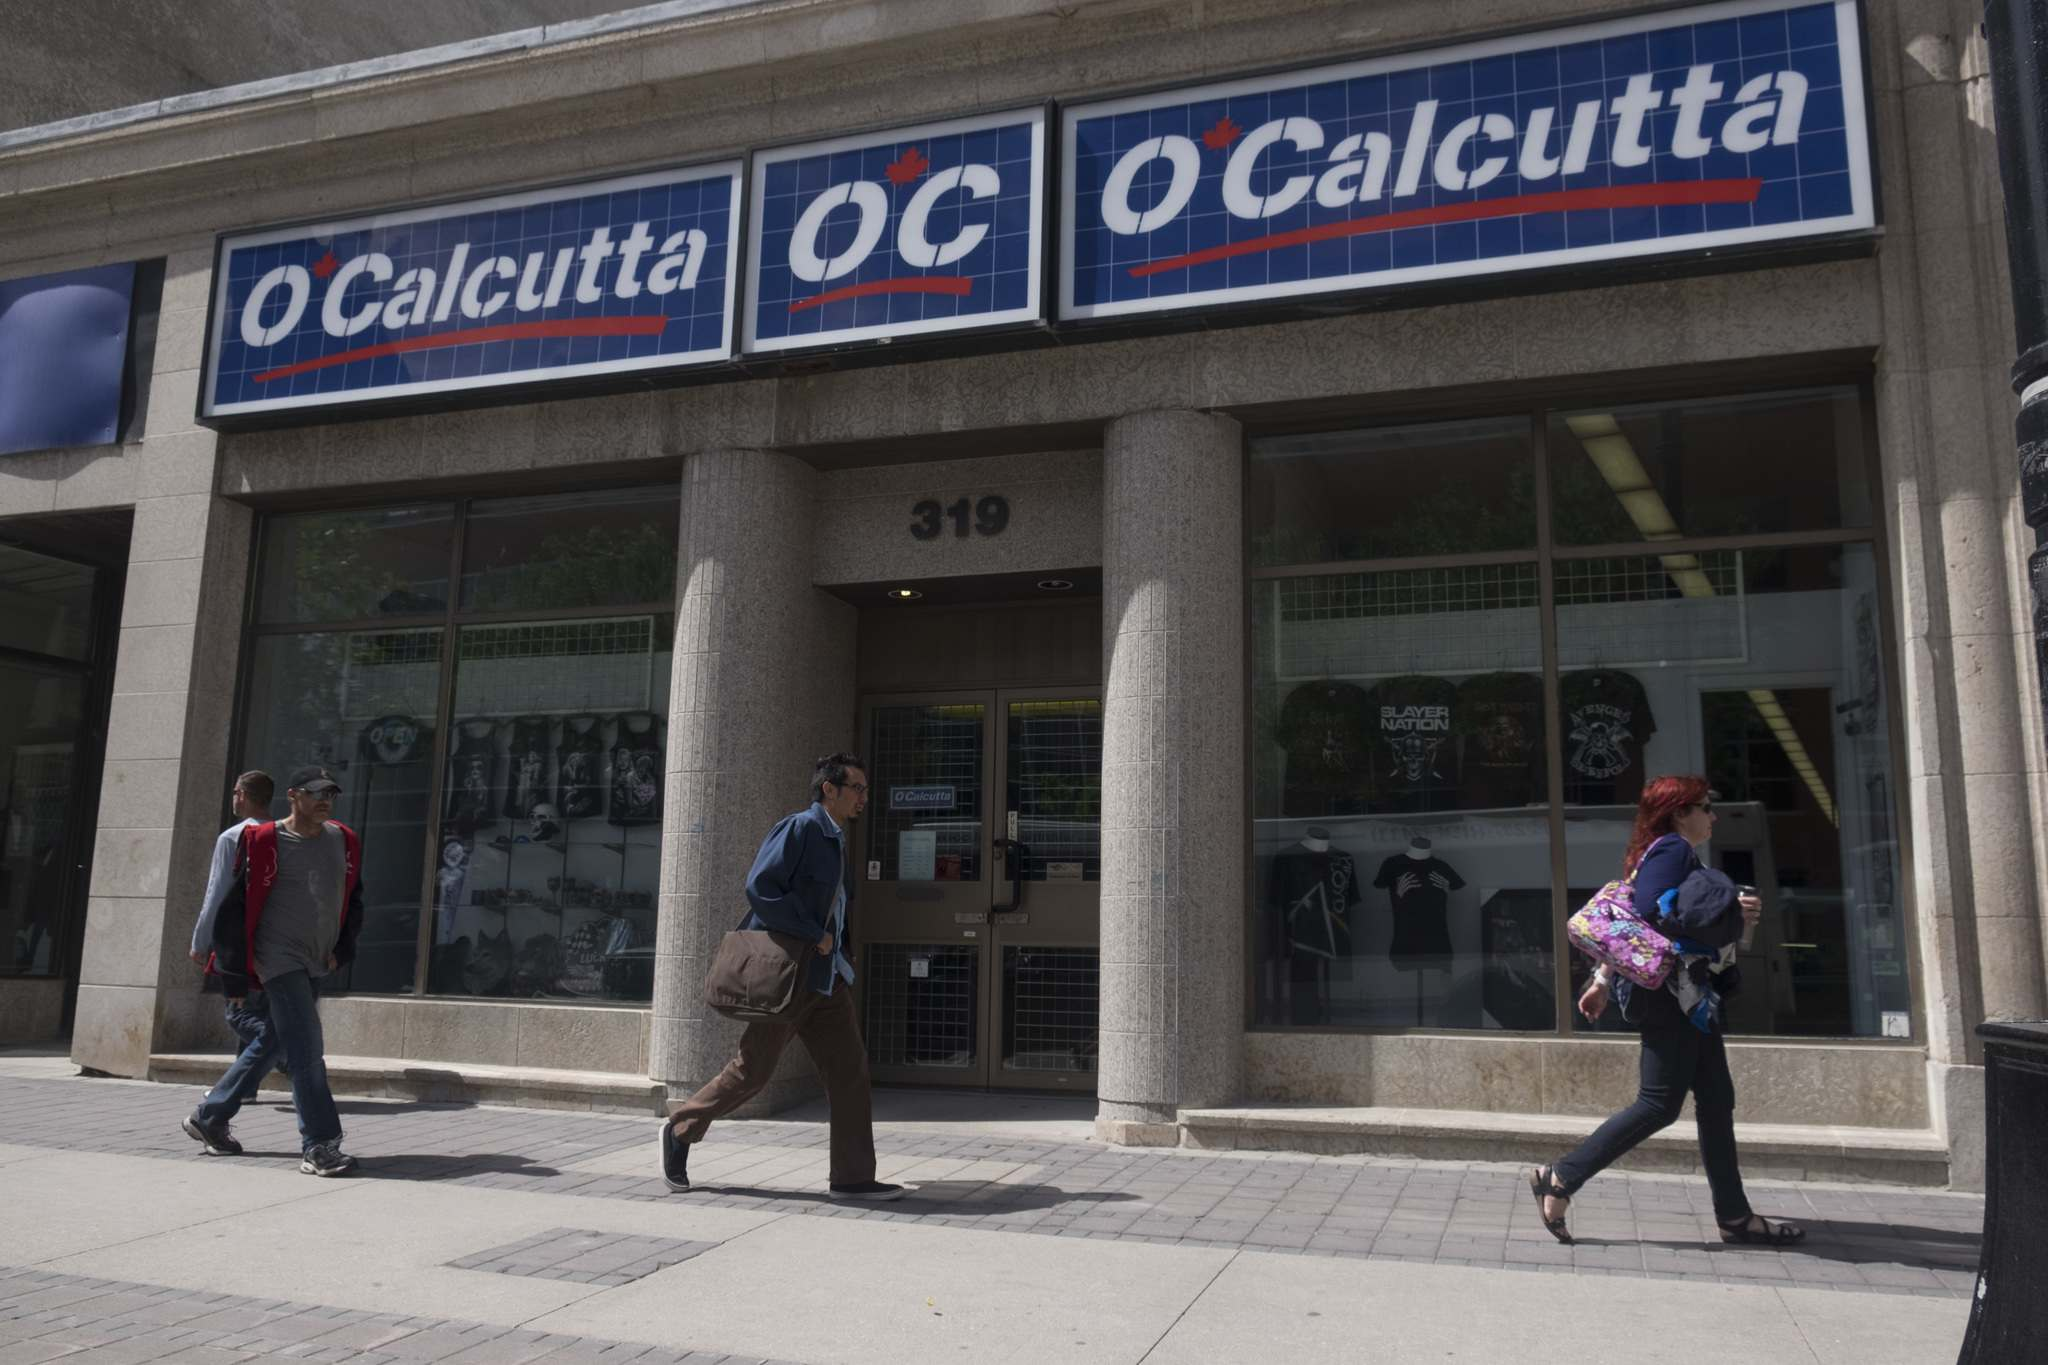 ZACHARY PRONG / WINNIPEG FREE PRESS</p><p>People pass by O Calcutta on the north side of Portage Avenue., one of the longest-running family businesses in the area. </p>